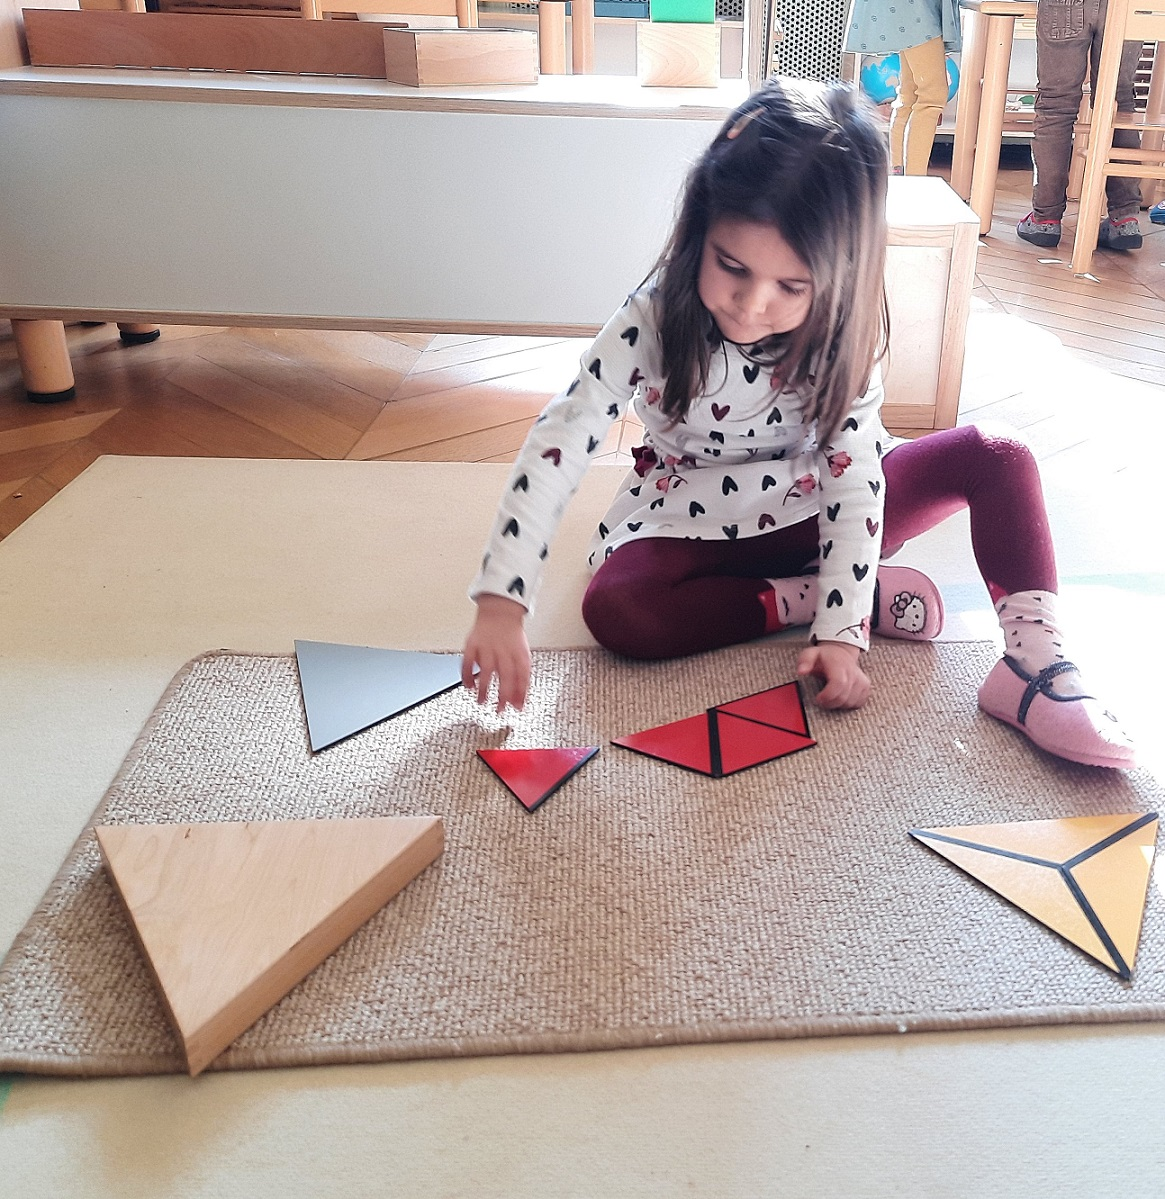 A child matching shapes to make larger shapes.